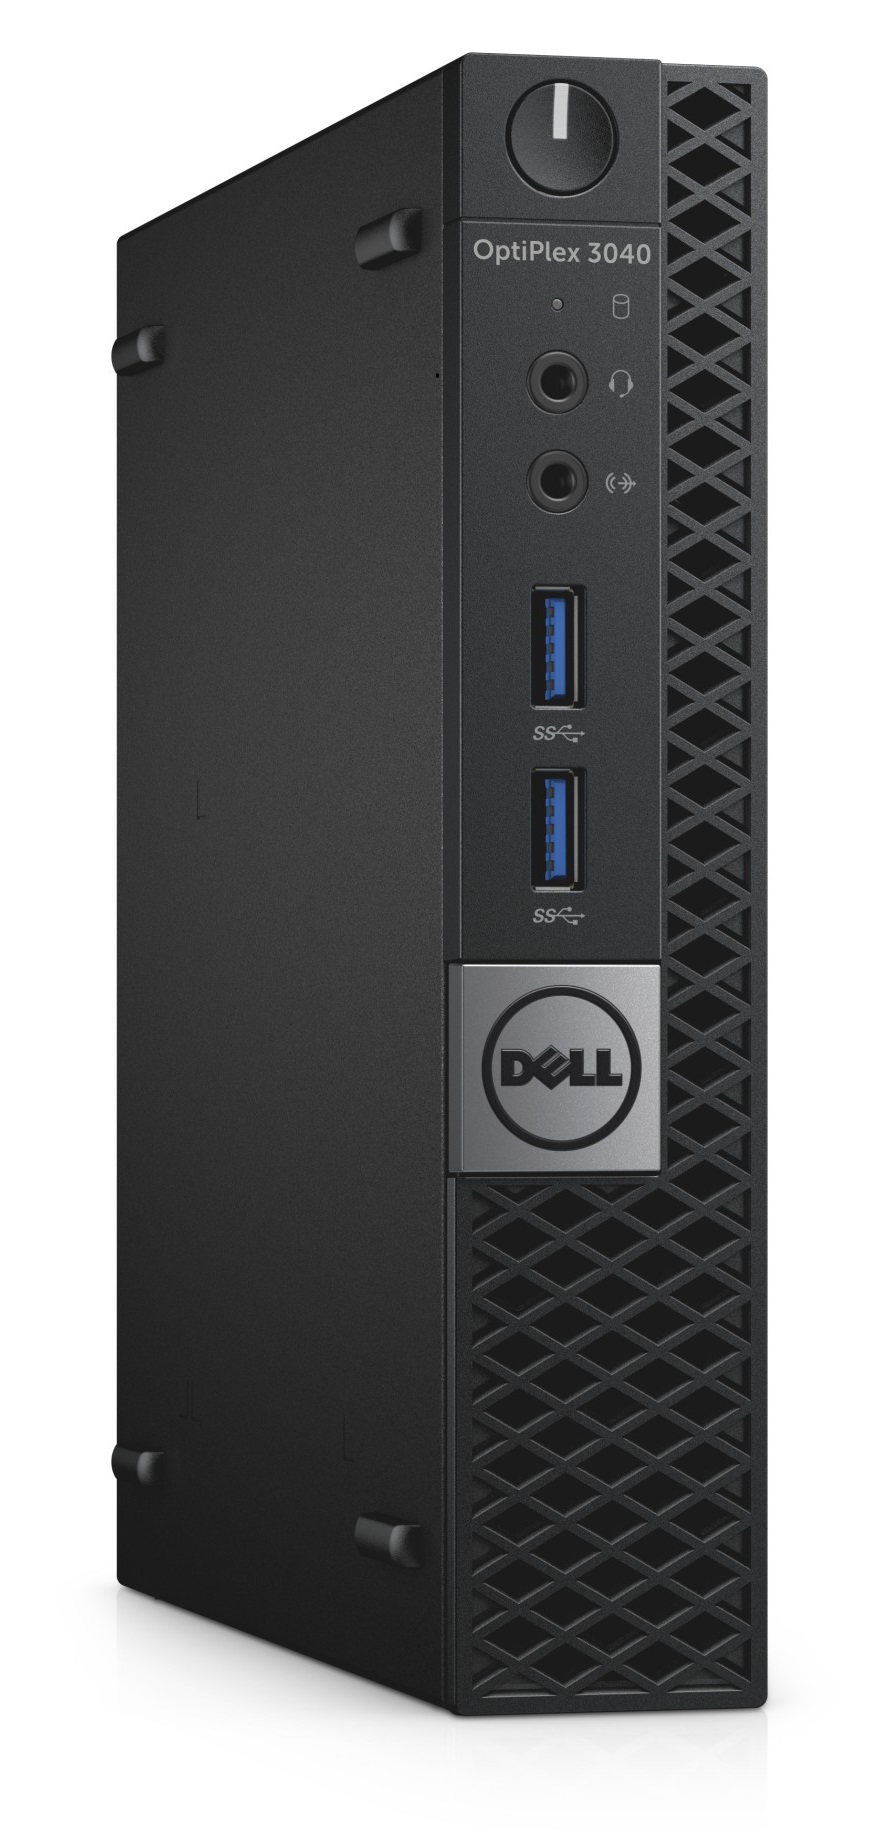 DELL OptiPlex MFF 3040 i3-6100T/4GB/500GB/Win7 PRO - Win 10 Pro 64bit/3Yr NBD